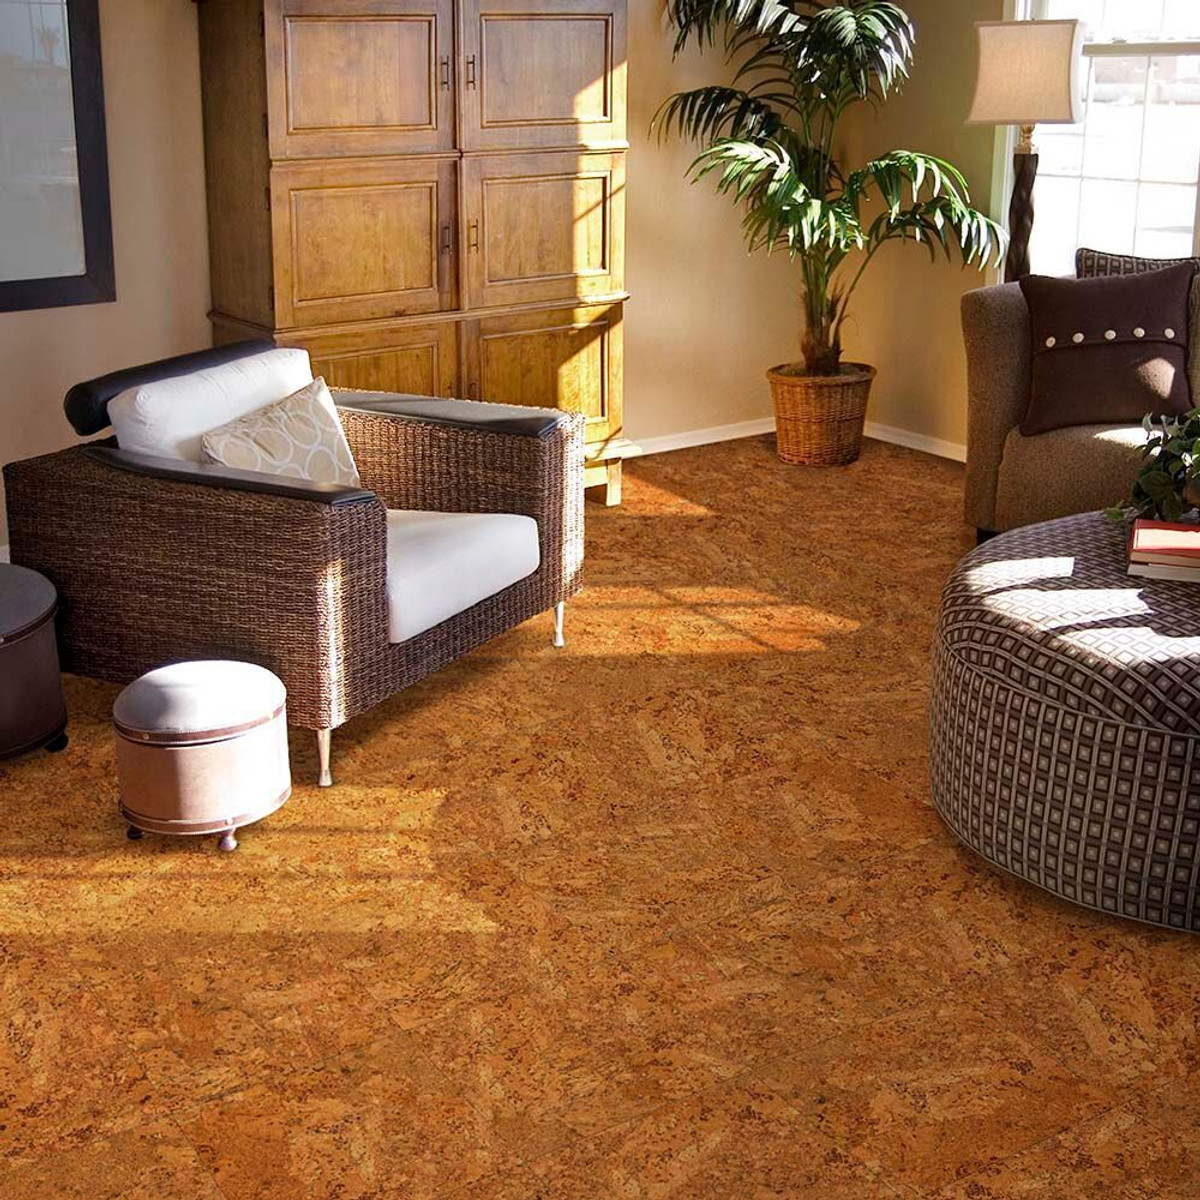 floor tiles cs all x natural imperialgold flexible naturalstone per tile styles perfectionfloortile floors interlocking stone perfection flexi office